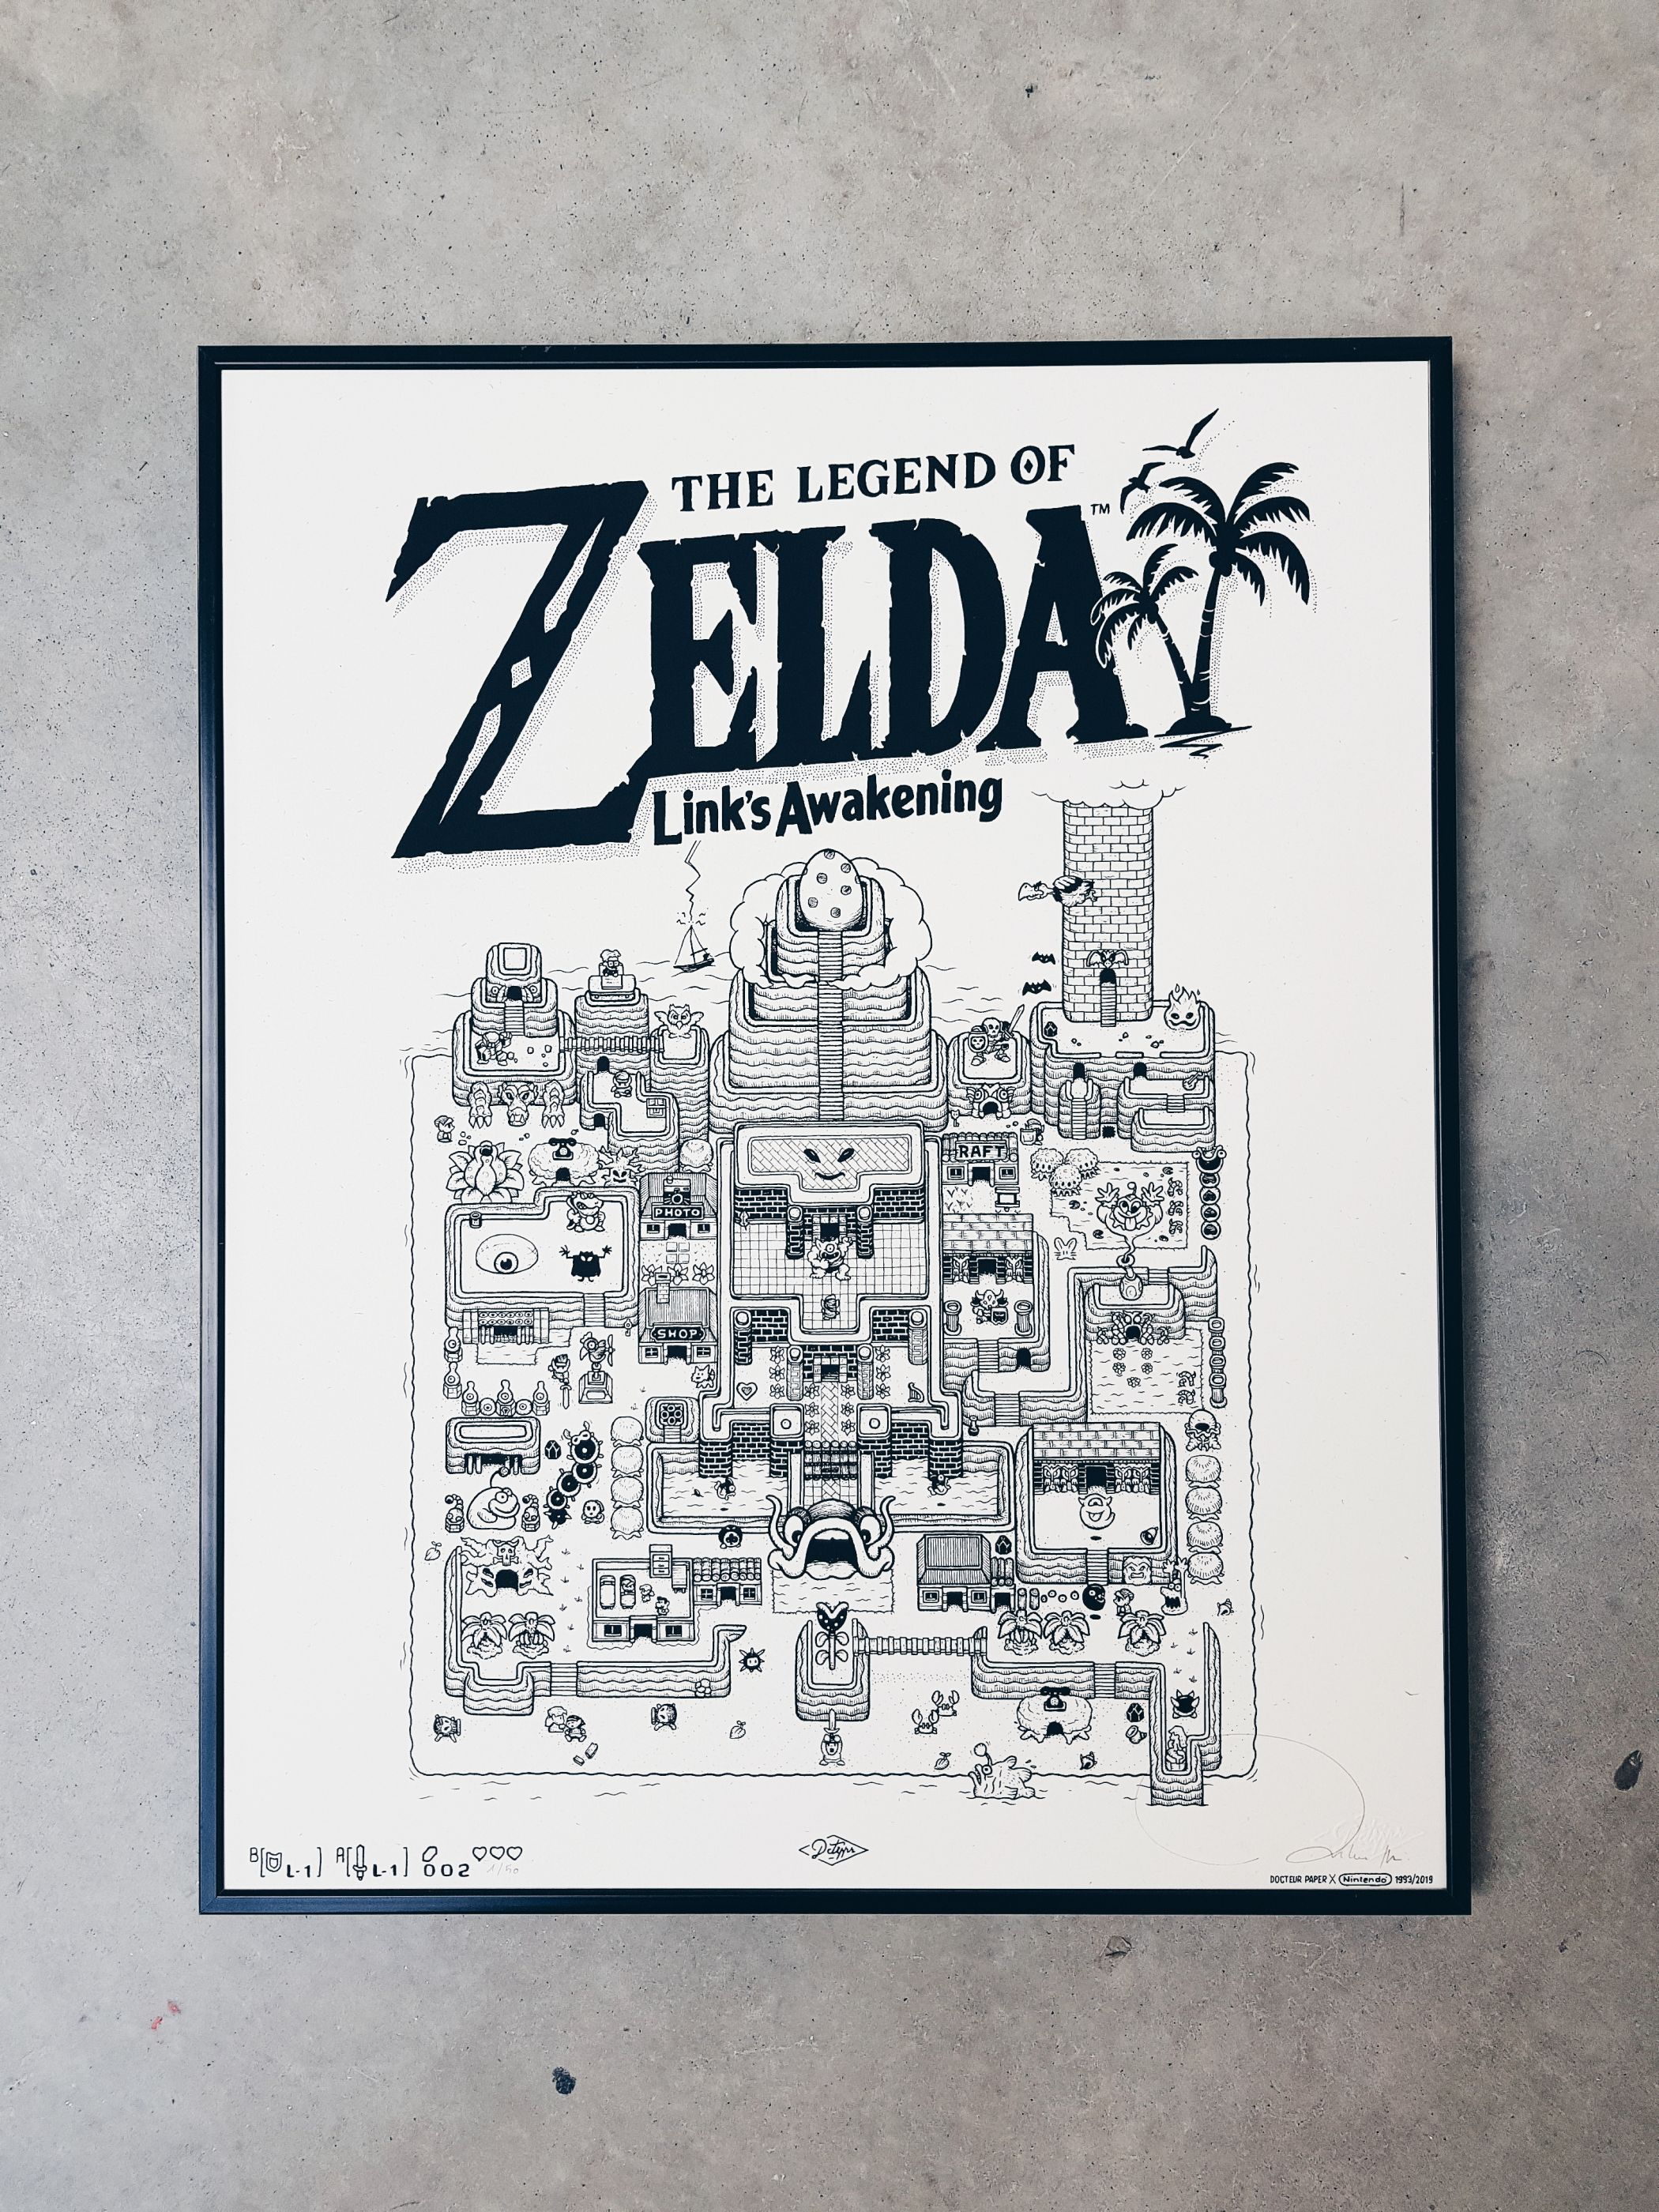 Zelda nintendo illustration Docteur Paper fnac ILLUSTRATION ILLUSTRATEUR